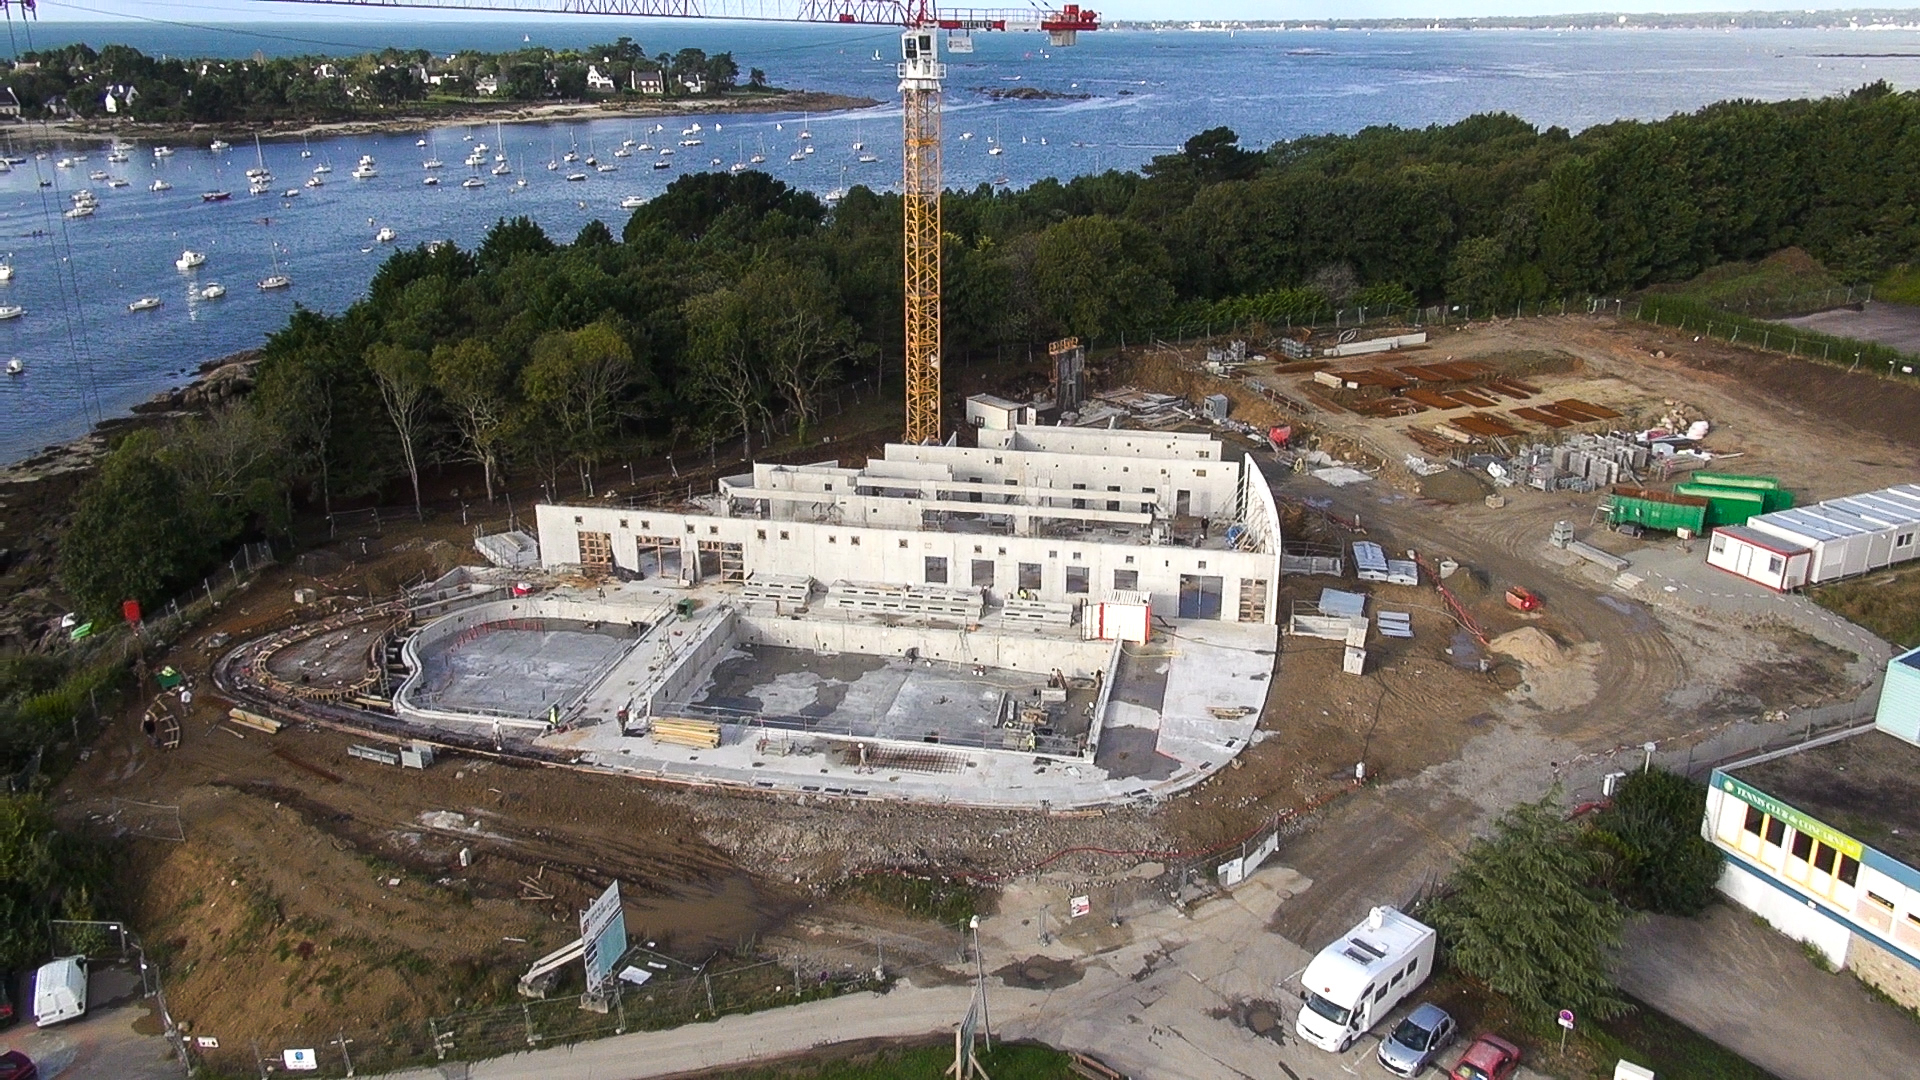 photo-aerienne-piscine-concarneau-chantier.jpg